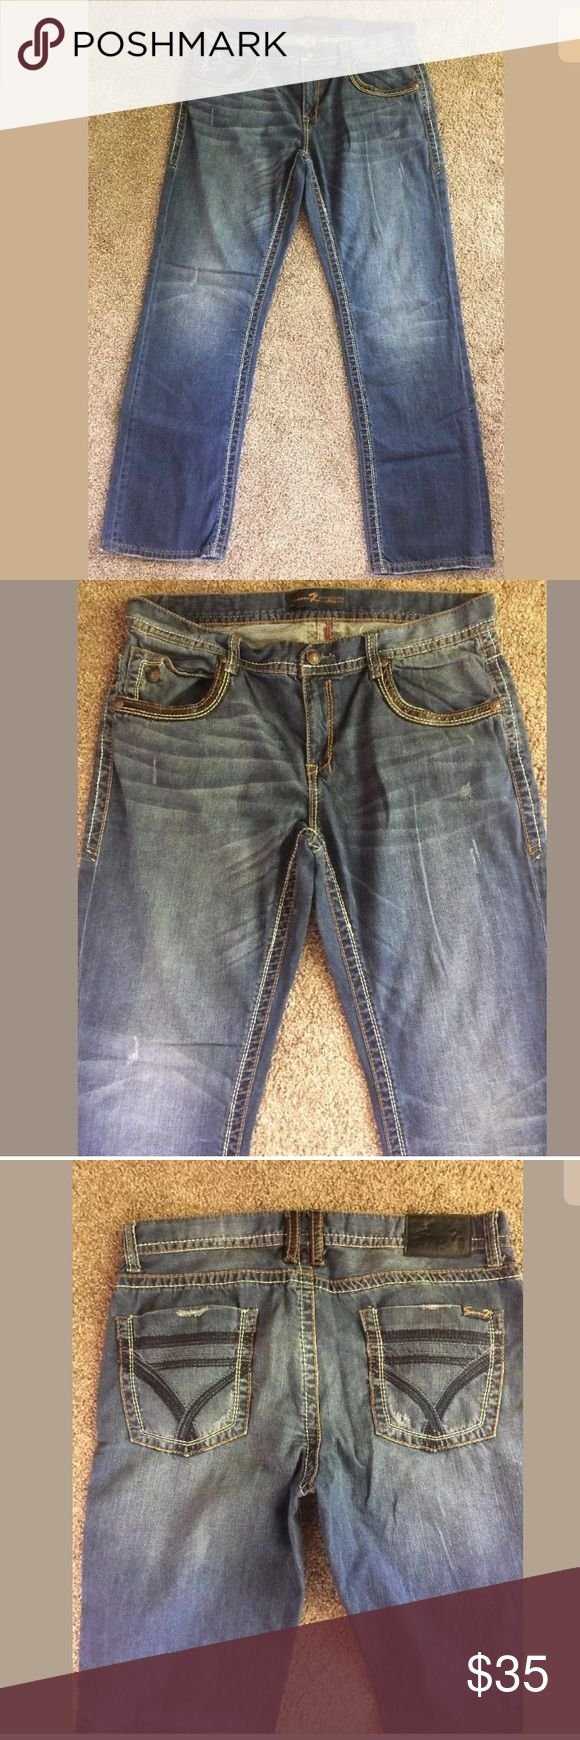 Seven7 Jeans Straight Fit Men's Size 38 x 34 Seven7 Jeans Straight Fit Men's Size 38 x 34 Jeans Embroidered Hemlines . Gently worn still in very good condition. Distressed Seven7 Jeans Straight